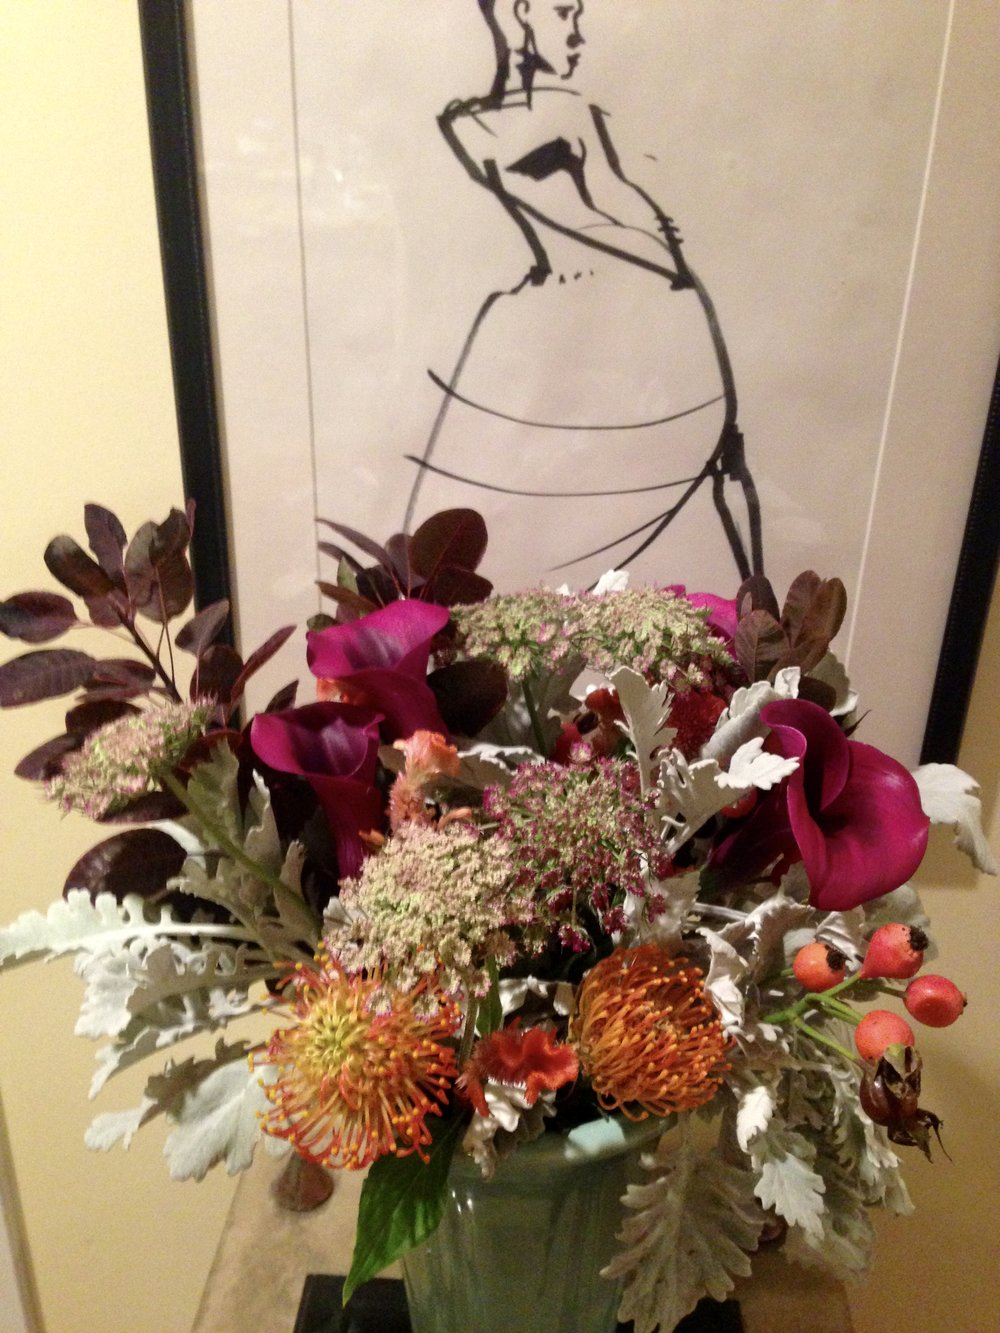 Fred's flowers the day after the show - transferred to a home vase. Just as gorgeous, I think.